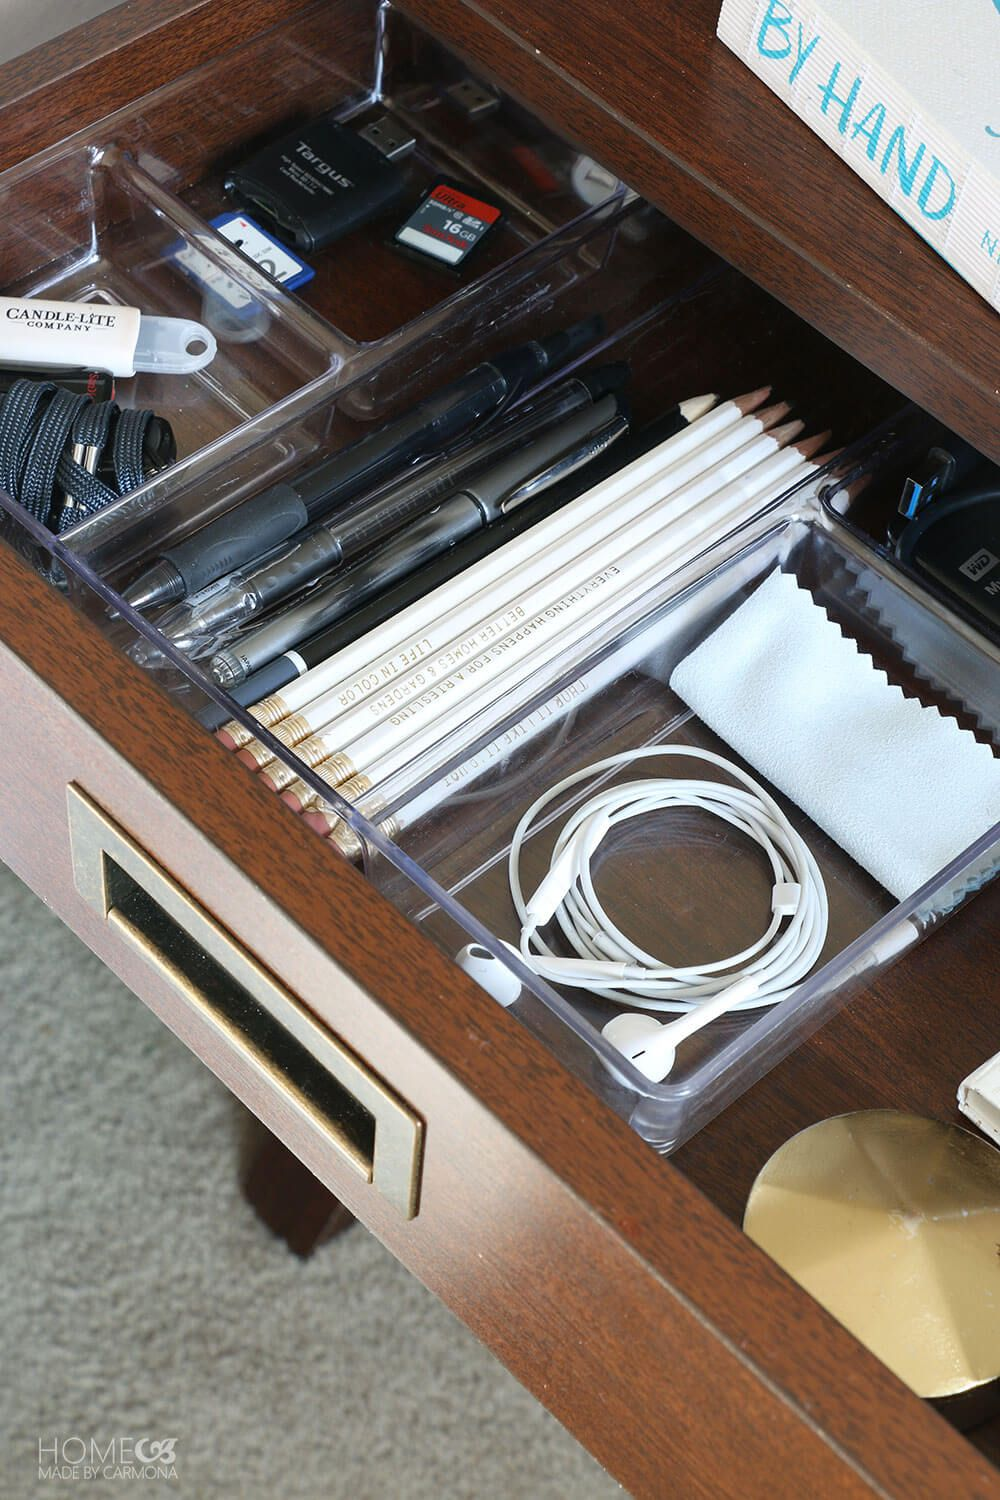 Master Bedroom Makeover Mishap is part of Study Drawer Organization - Follow my crazy misadventures as I makeover my master bedroom for the One Room Challenge  This 6 week design challenge may have me bested yet